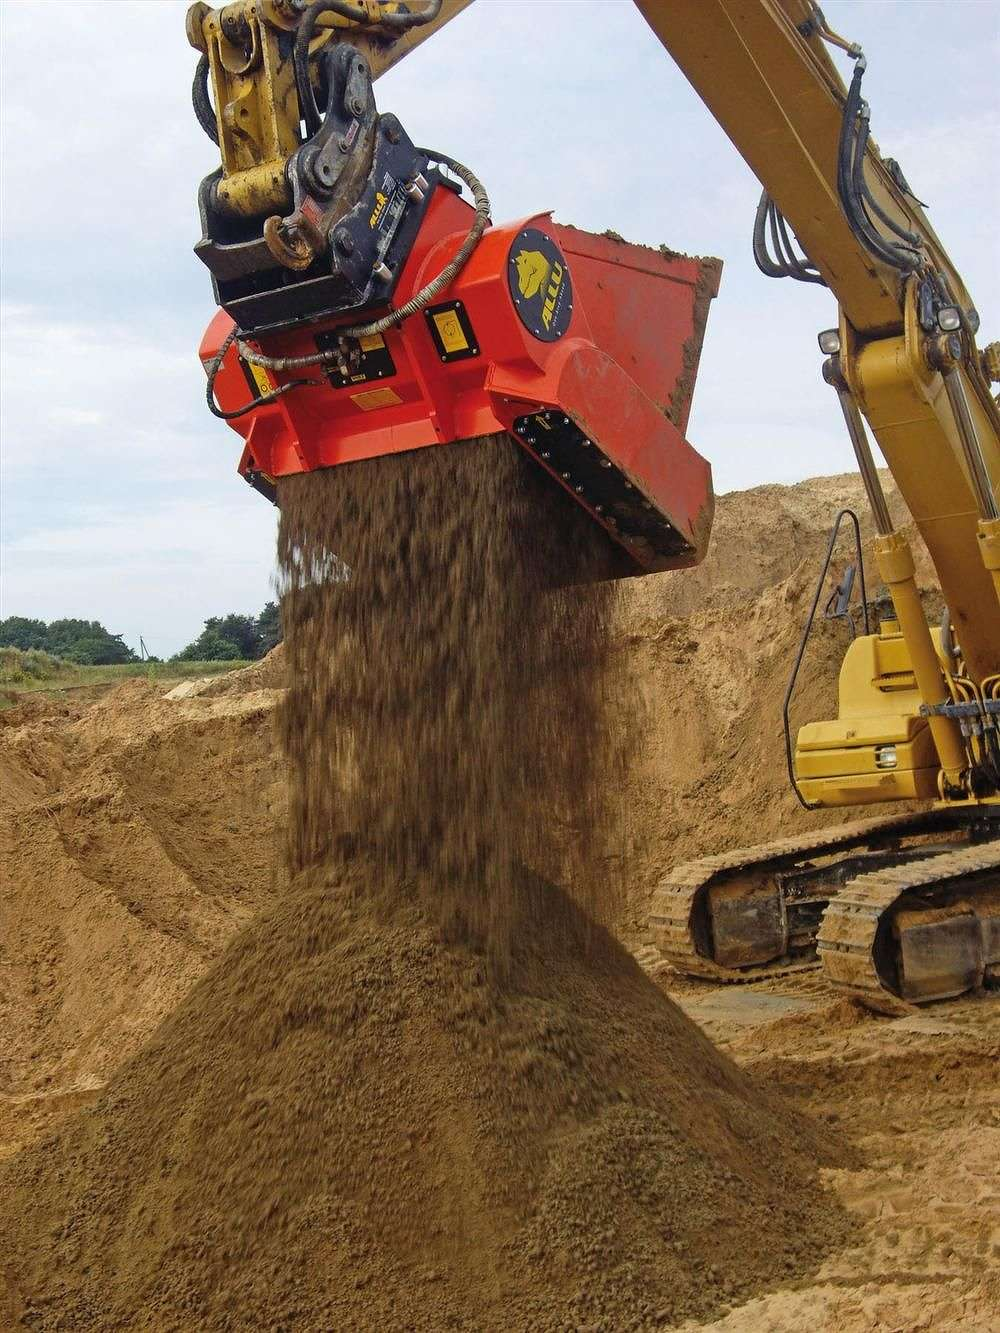 The suit concerned technology relating to ALLU's Screening, Crushing, or Mixing Buckets.